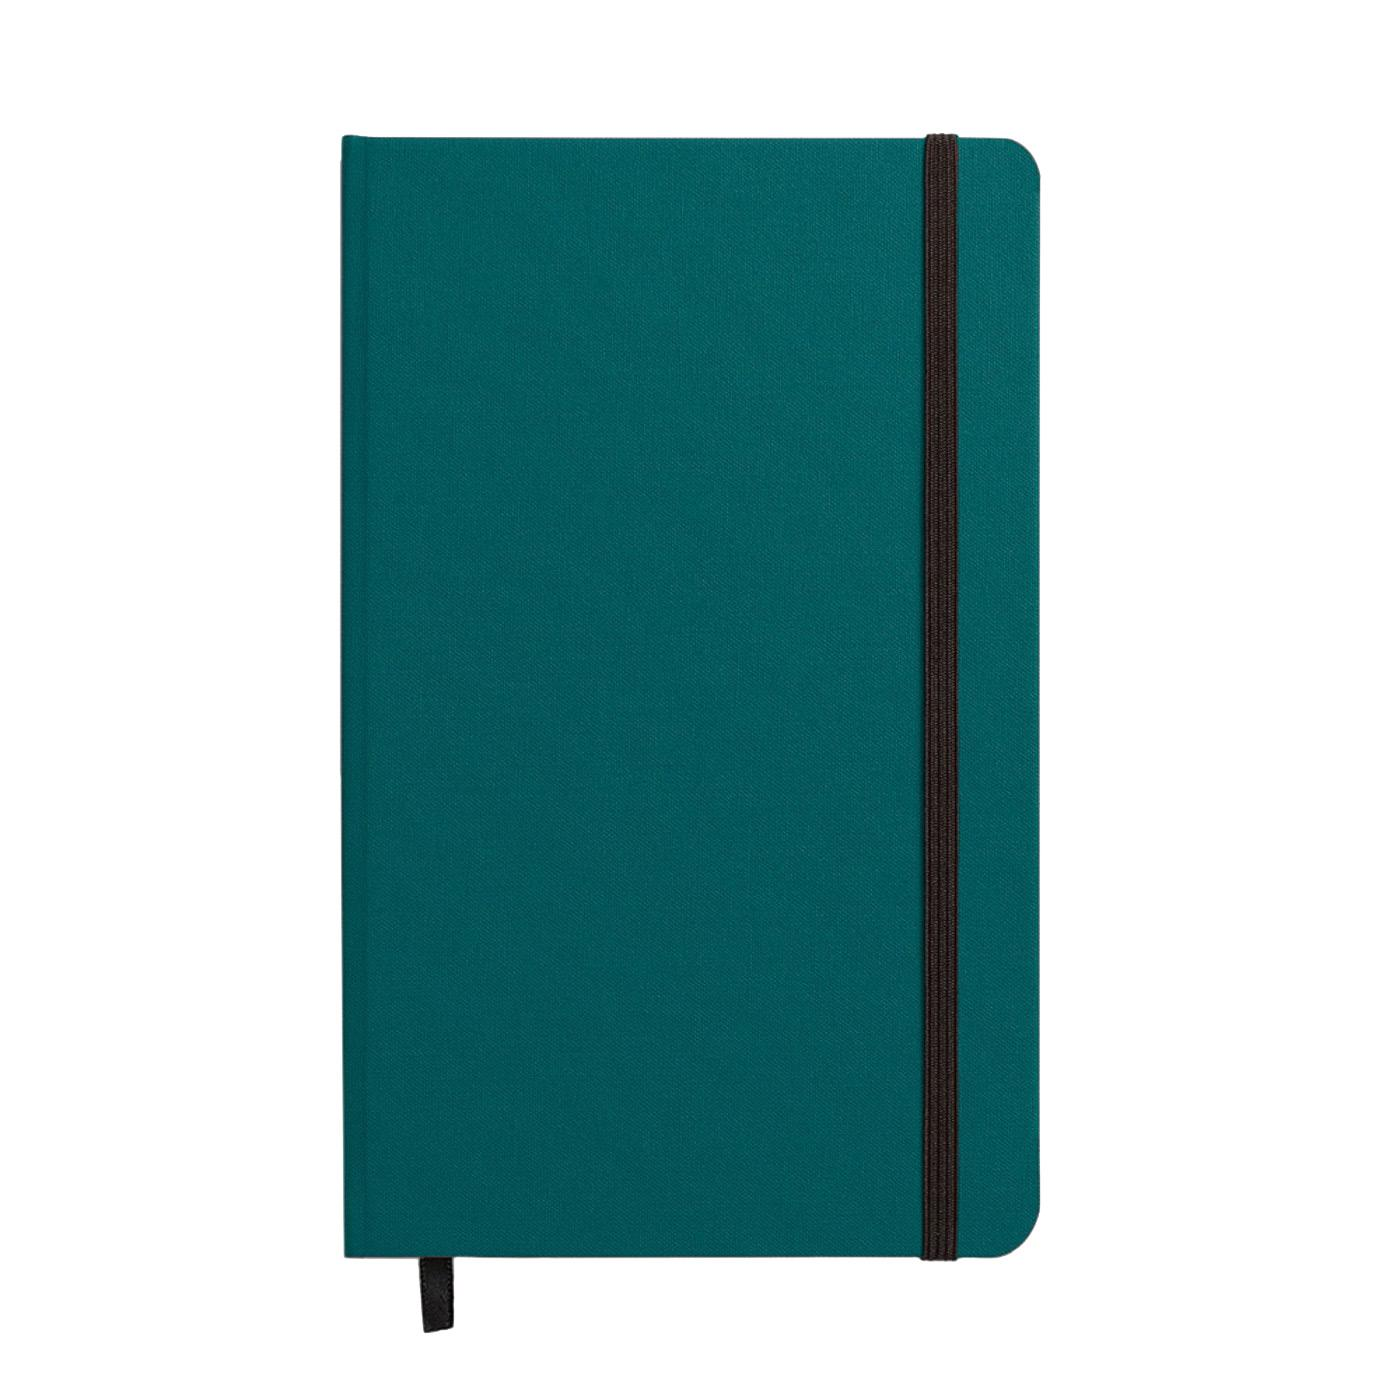 "Shinola Grid Hard Linen 5.25""x8.25"" Journal Dark Teal"